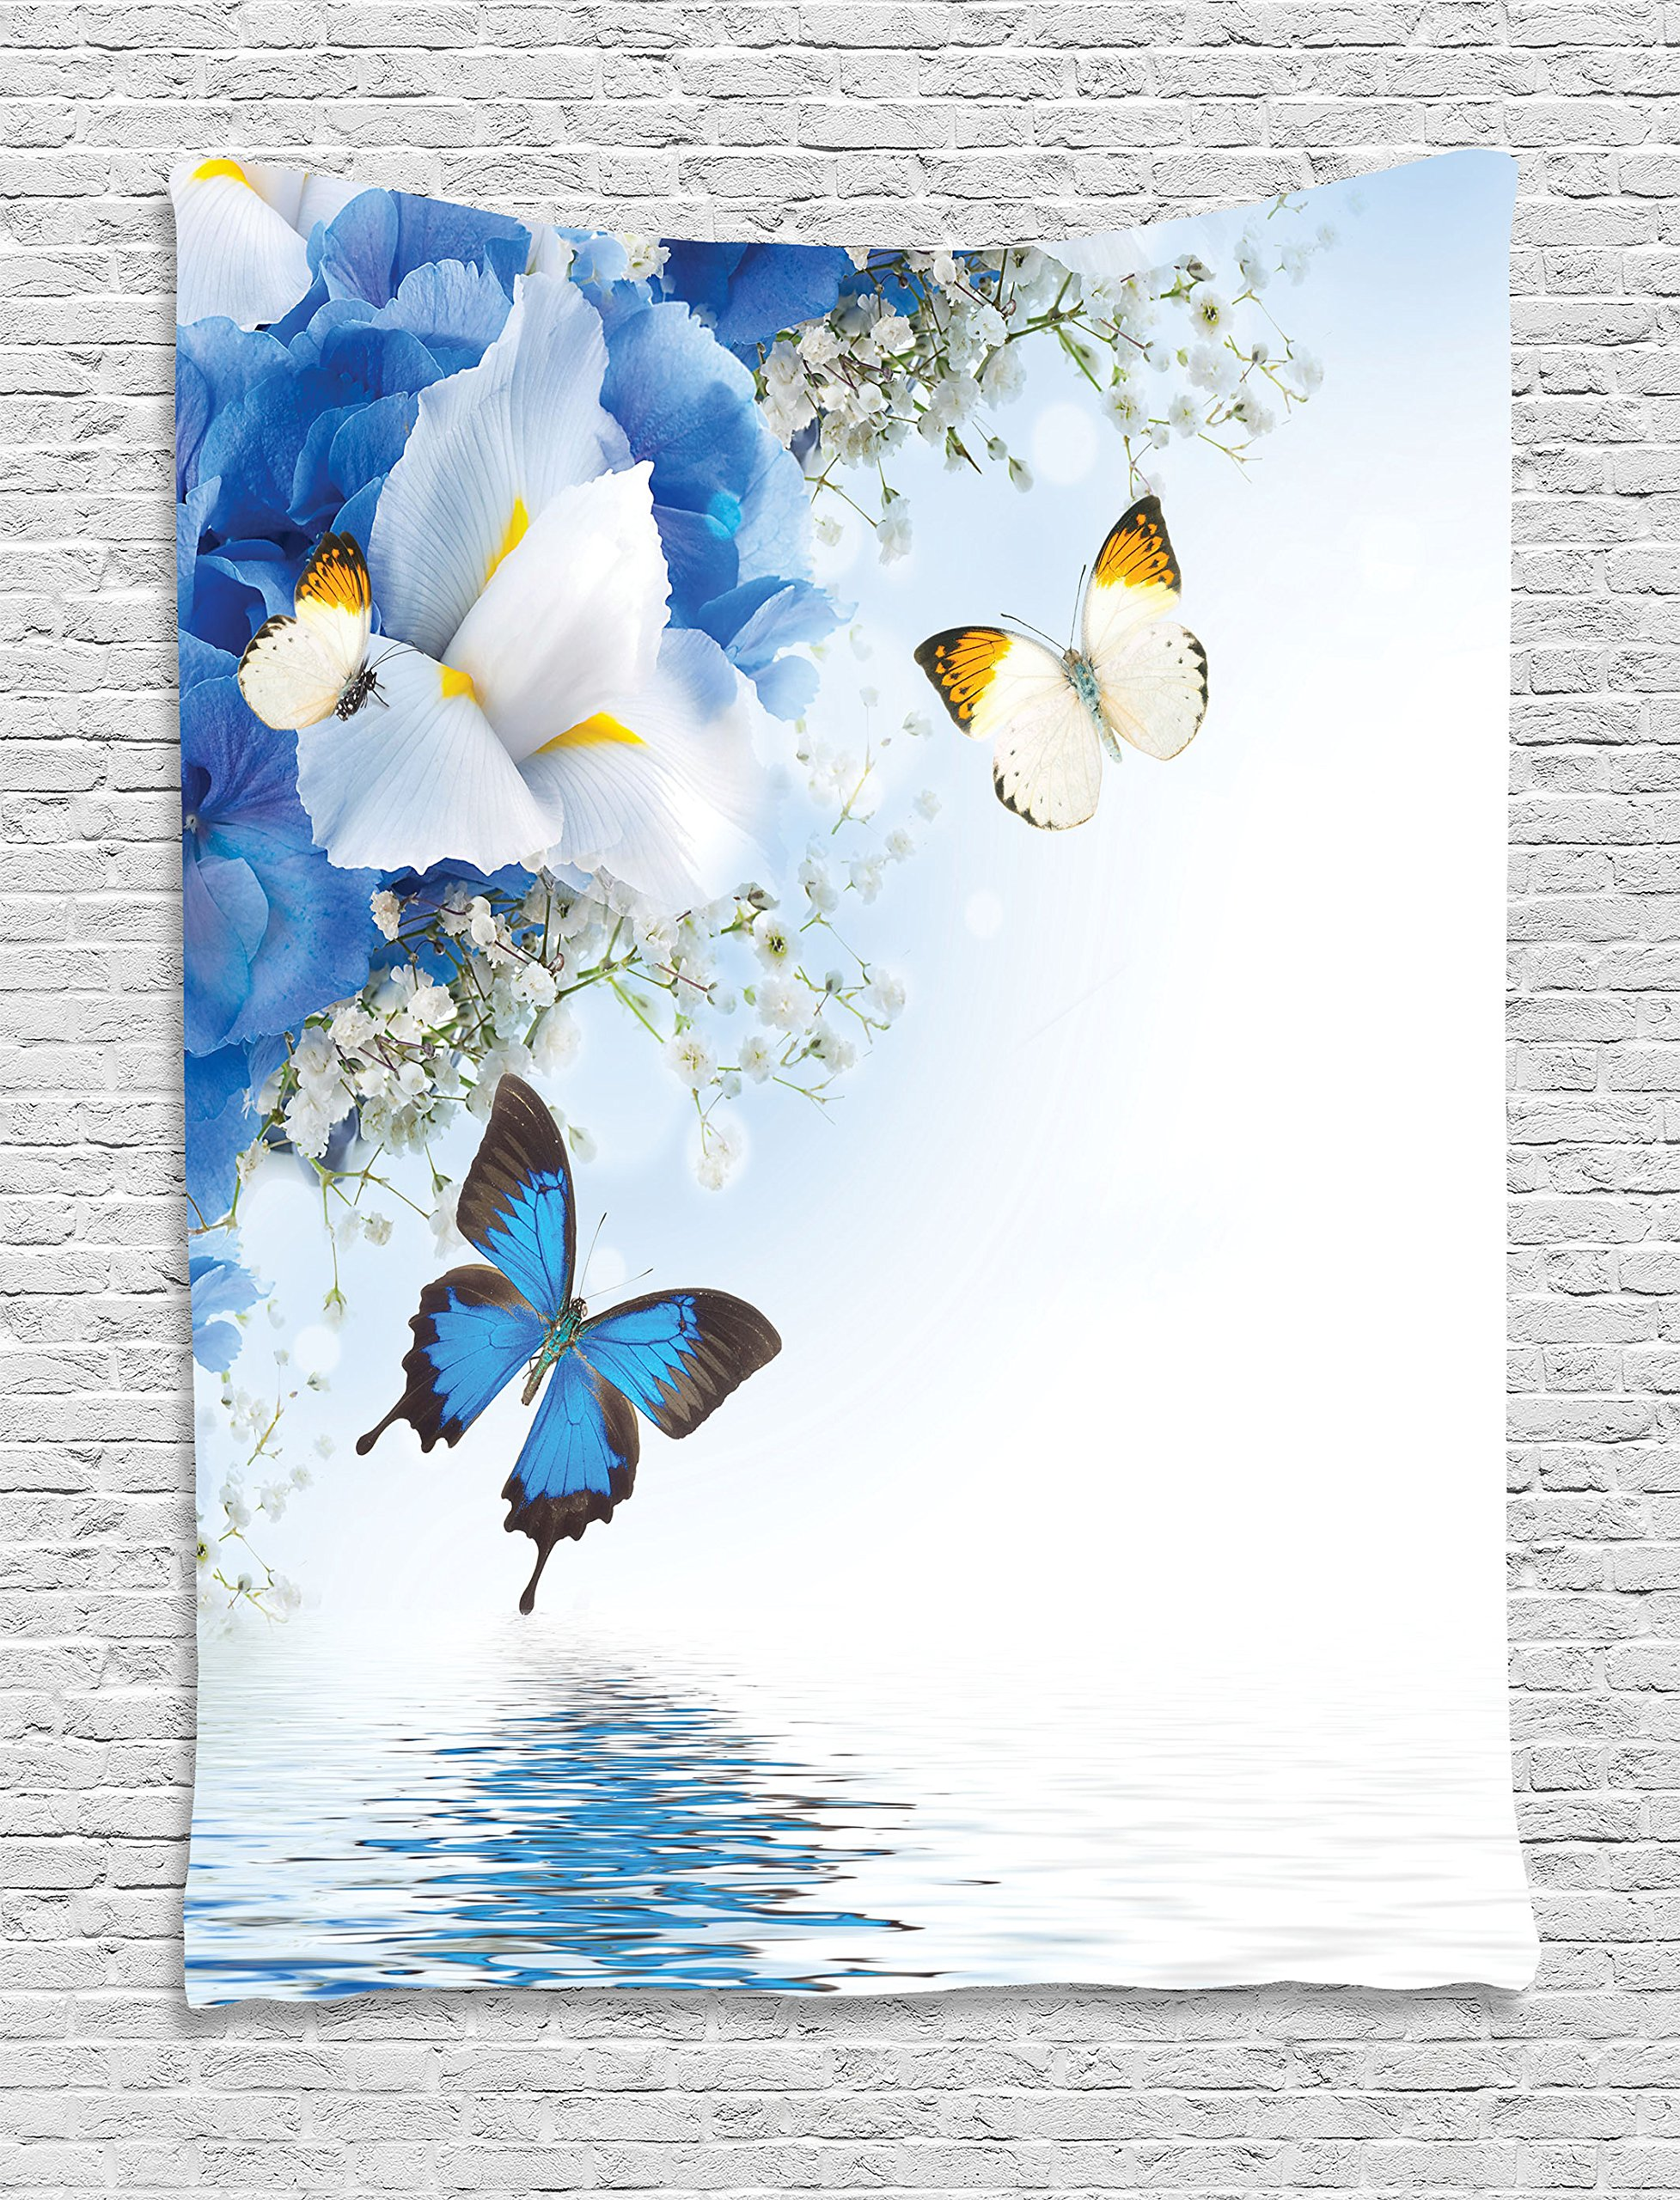 Ambesonne Floral Tapestry, Blue and White Wild Flowers with Monarch Butterflies Lily Therapy Zen Spa Art Prints, Wall Hanging for Bedroom Living Room Dorm, 60 W x 80 L Inches, Light Blue